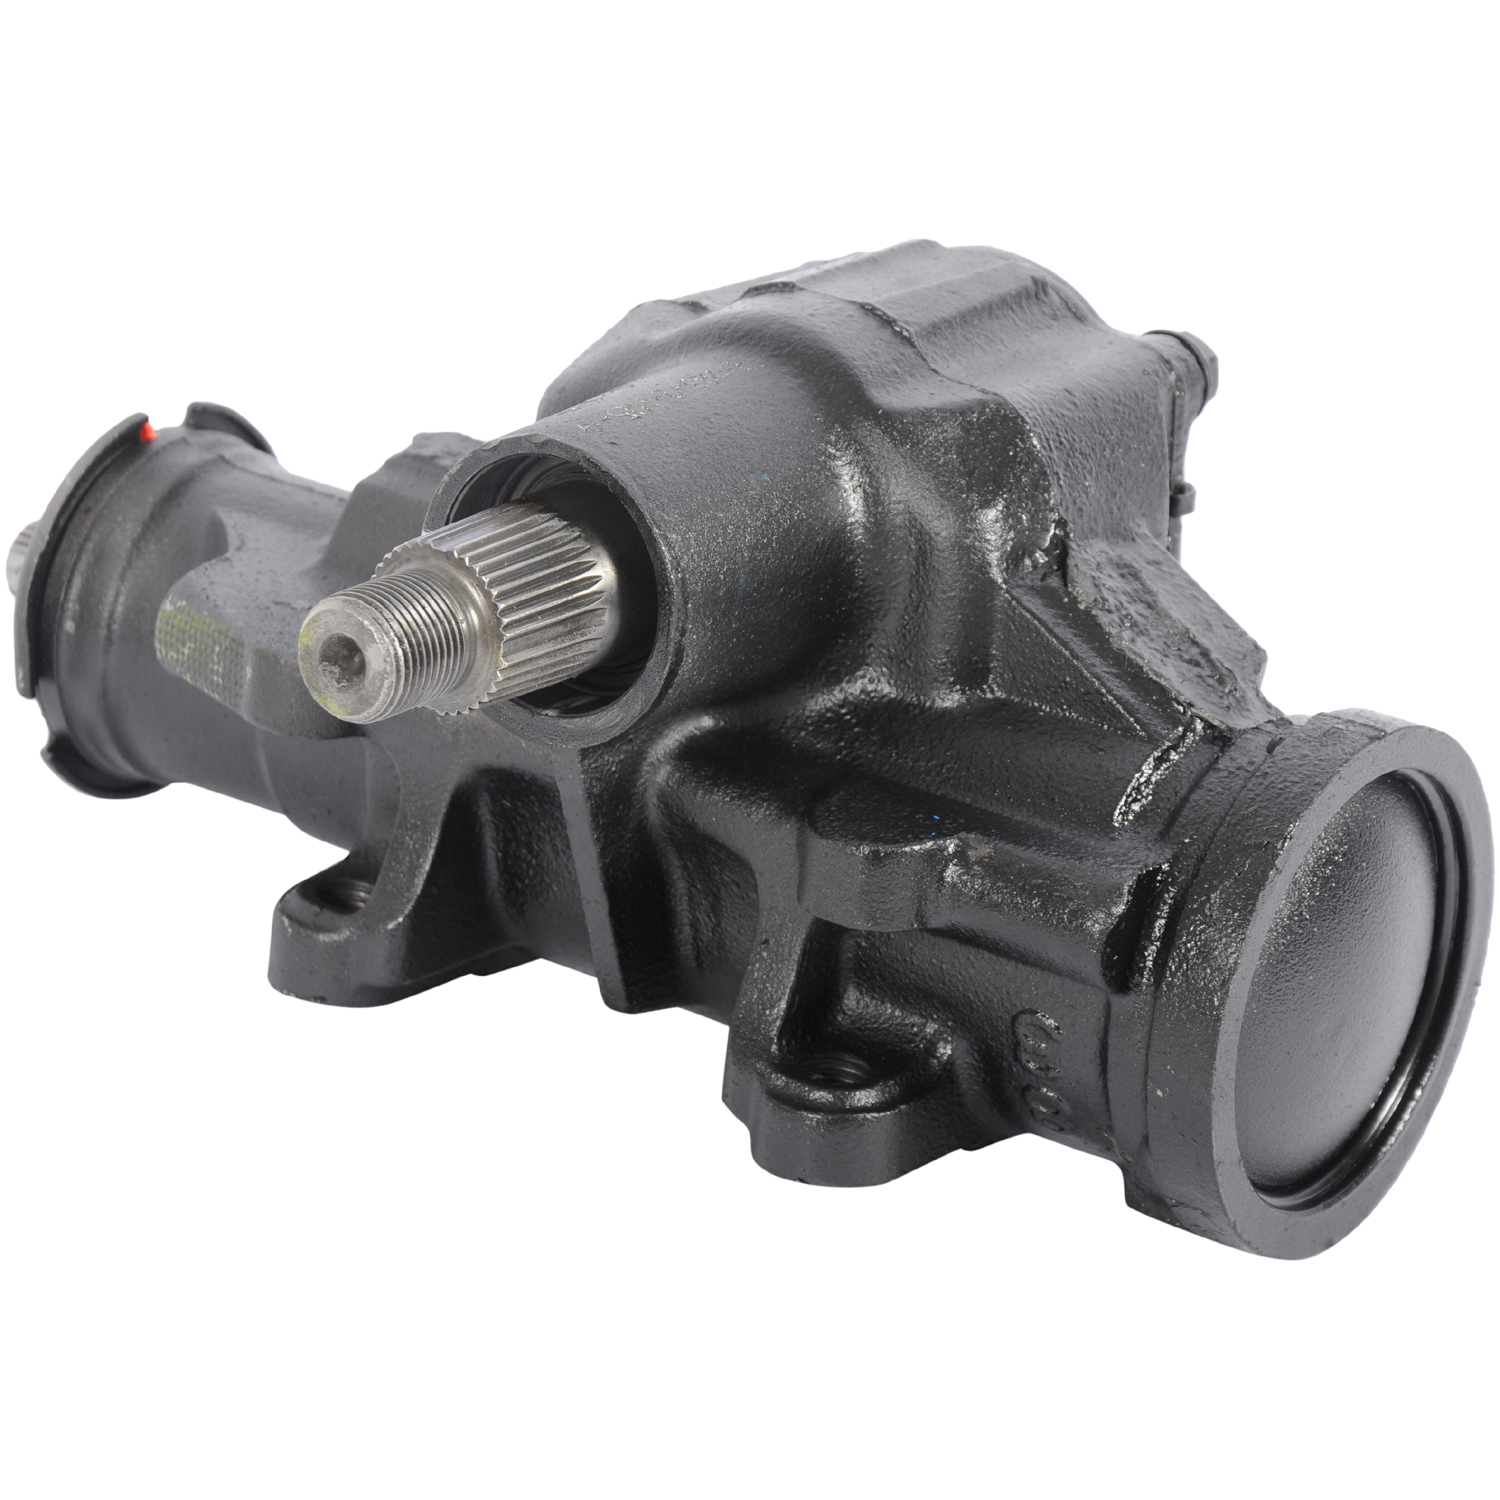 ACDELCO PROFESSIONAL STRG PRODUCTS N - Professional Remanufactured Steering Gear - DC3 36G0139